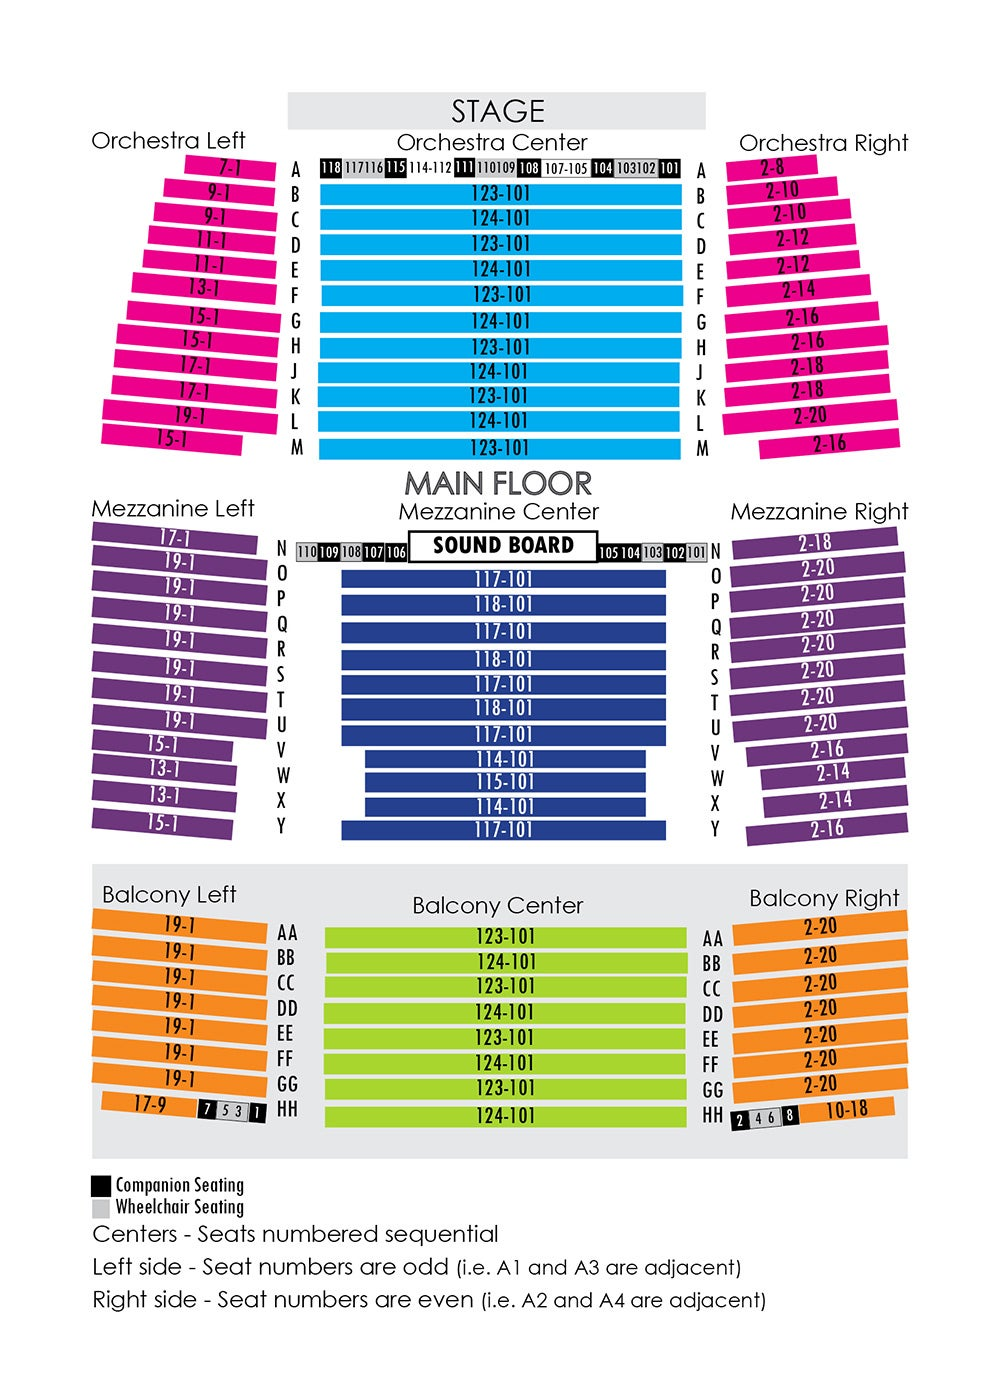 House Seating Chart | Niswonger Performing Arts Center